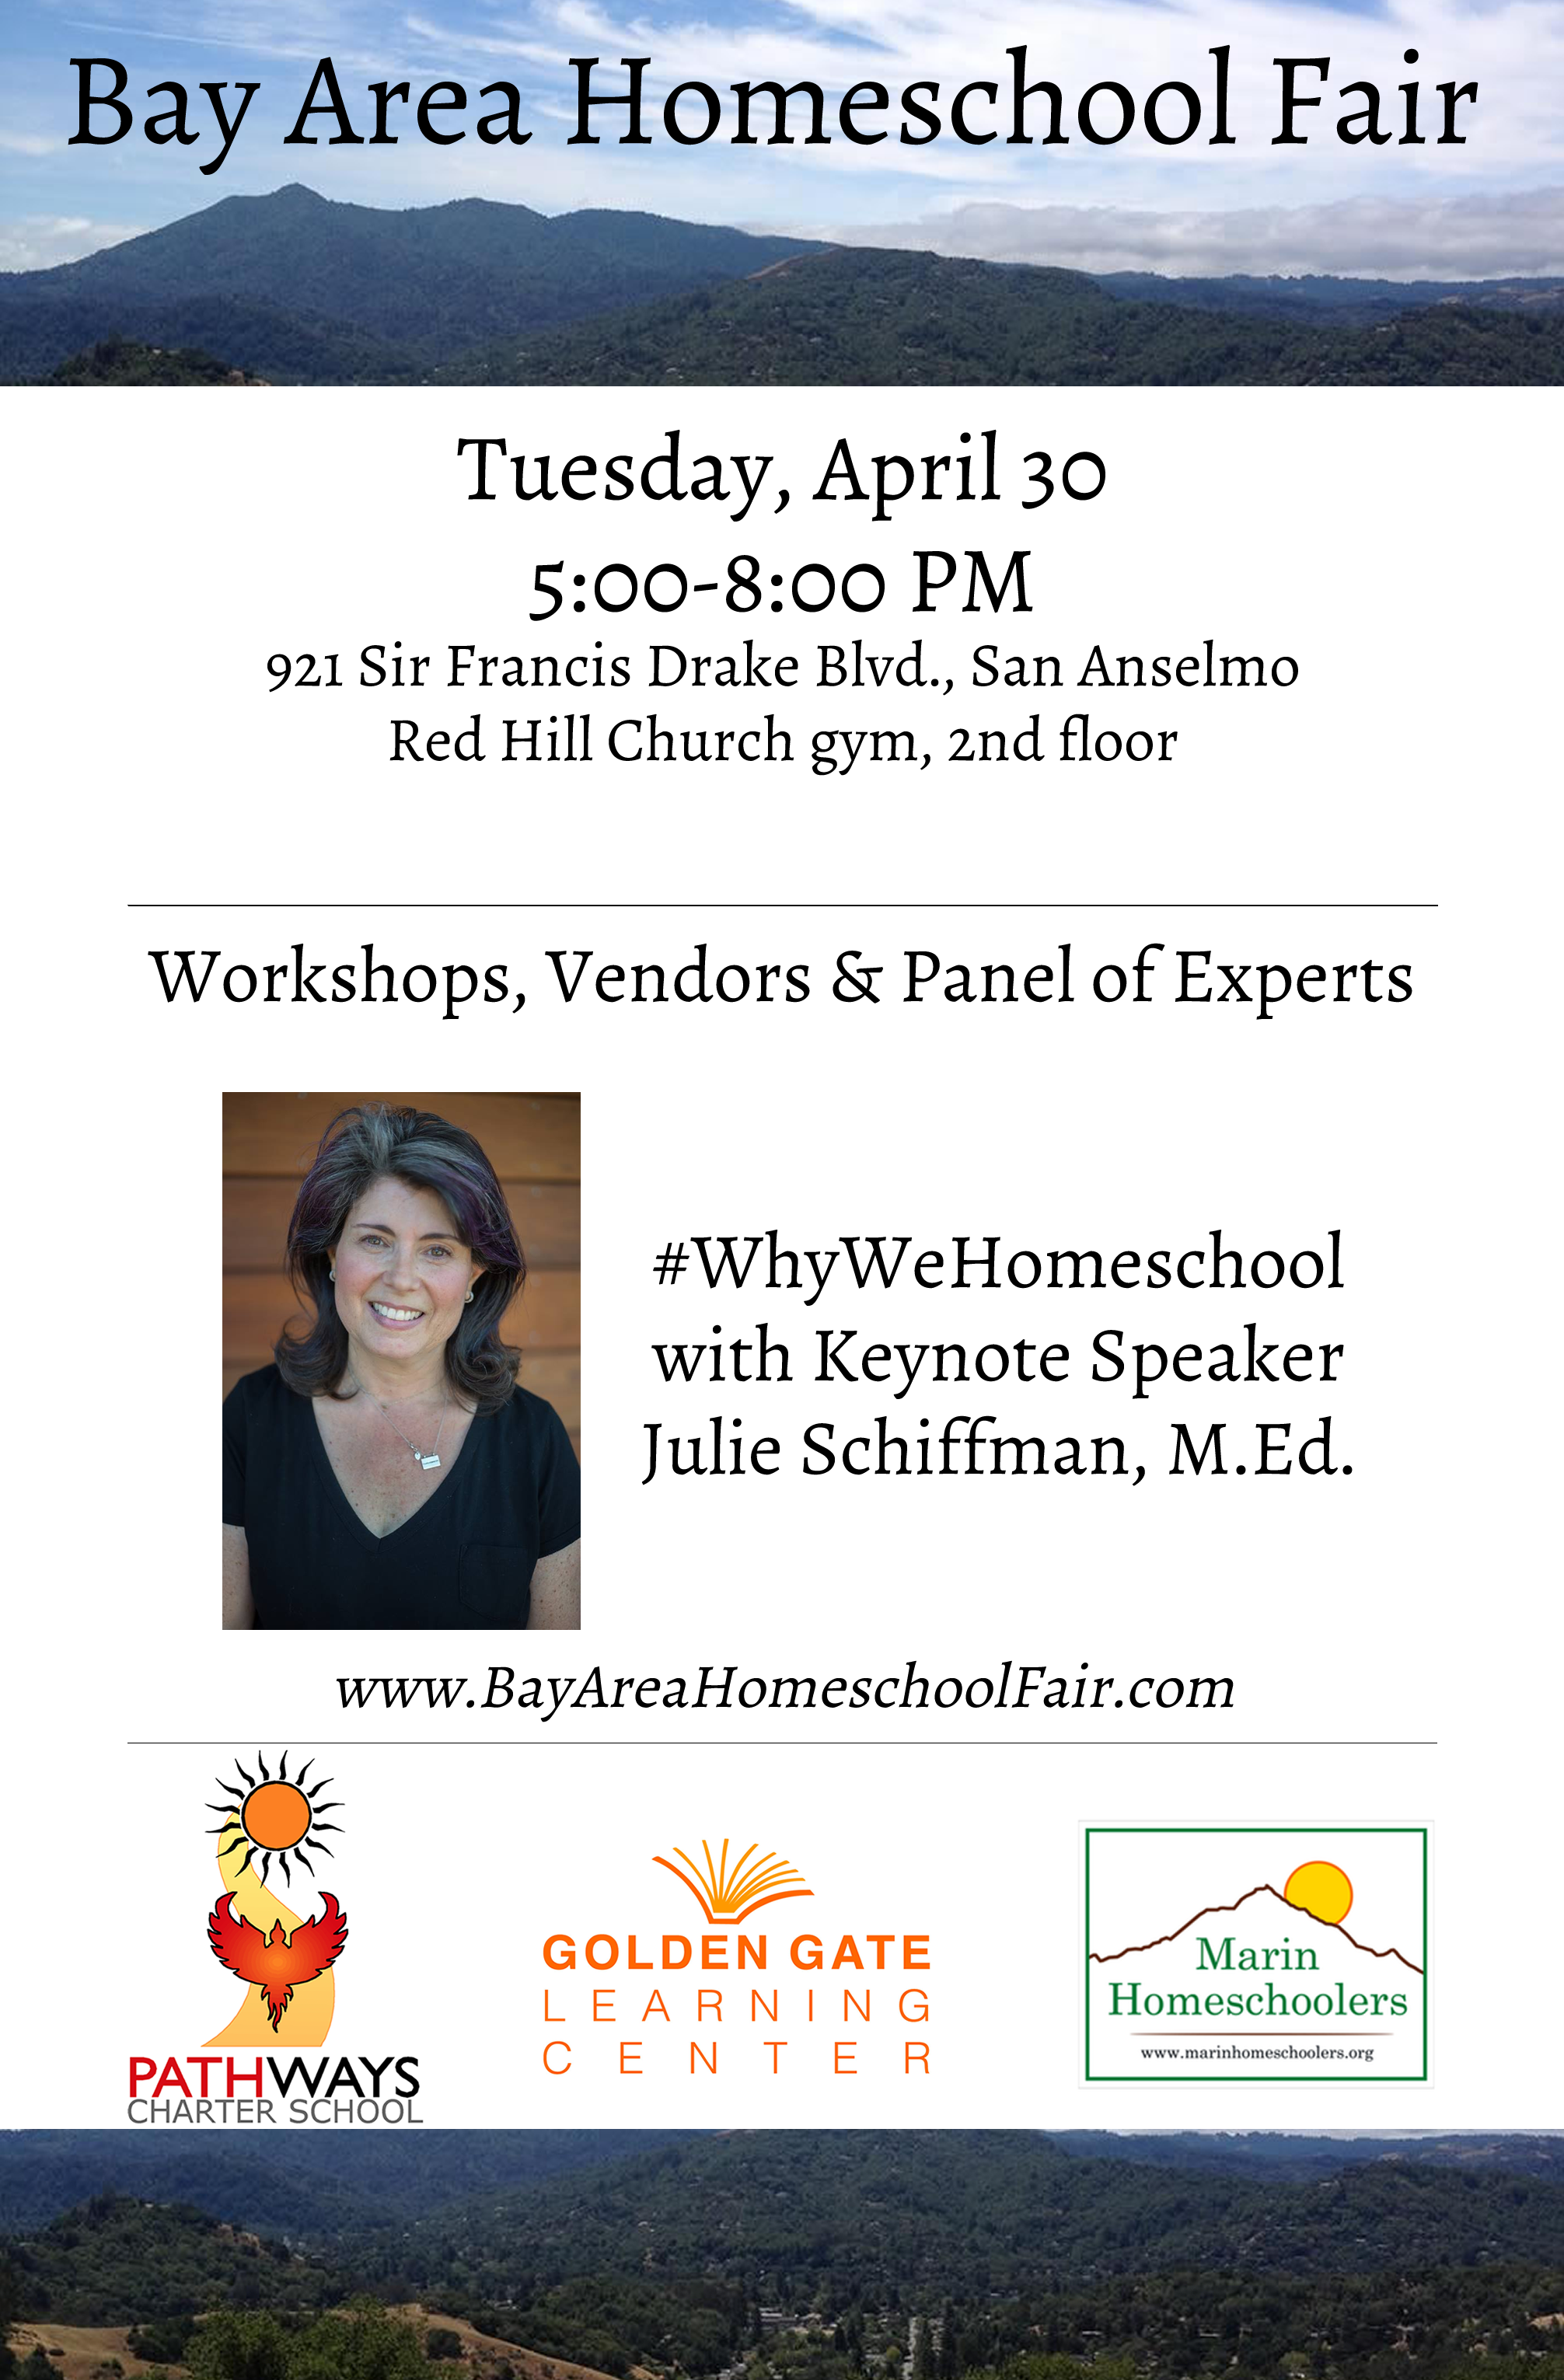 Bay Area Homeschool Fair 2019 poster.fw.png